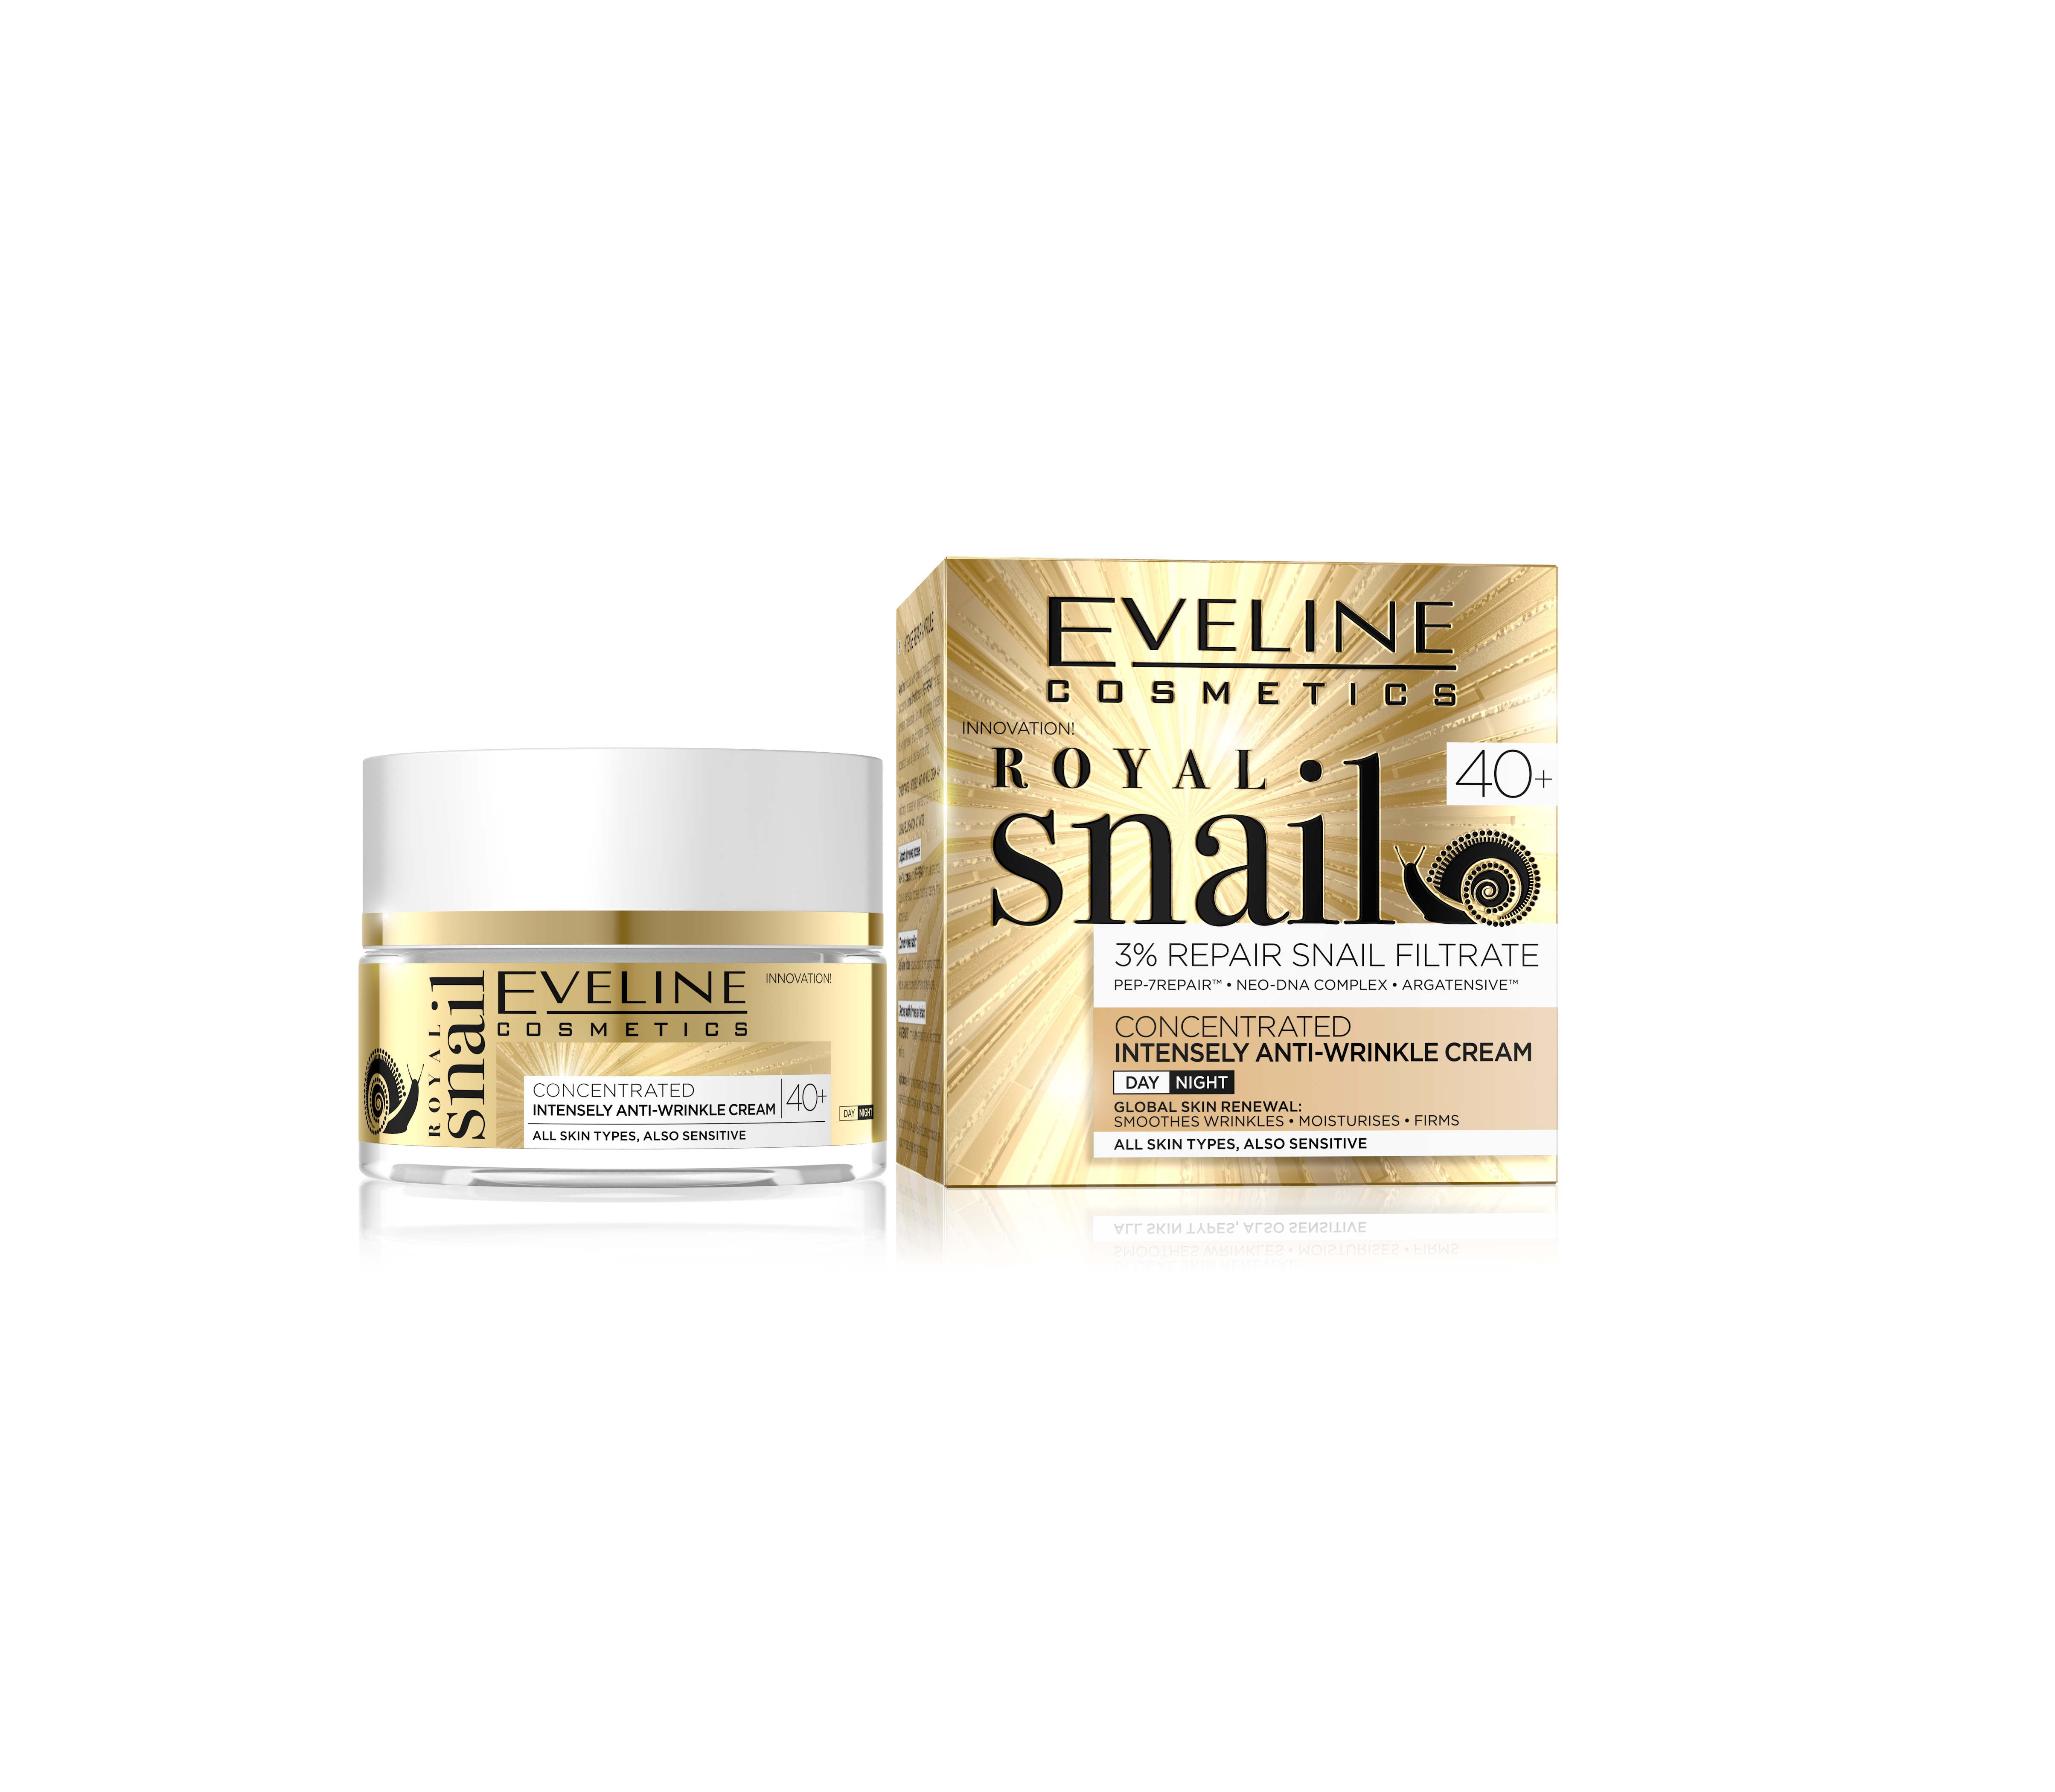 Eveline royal snail protivráskový krém 40+ 50ml